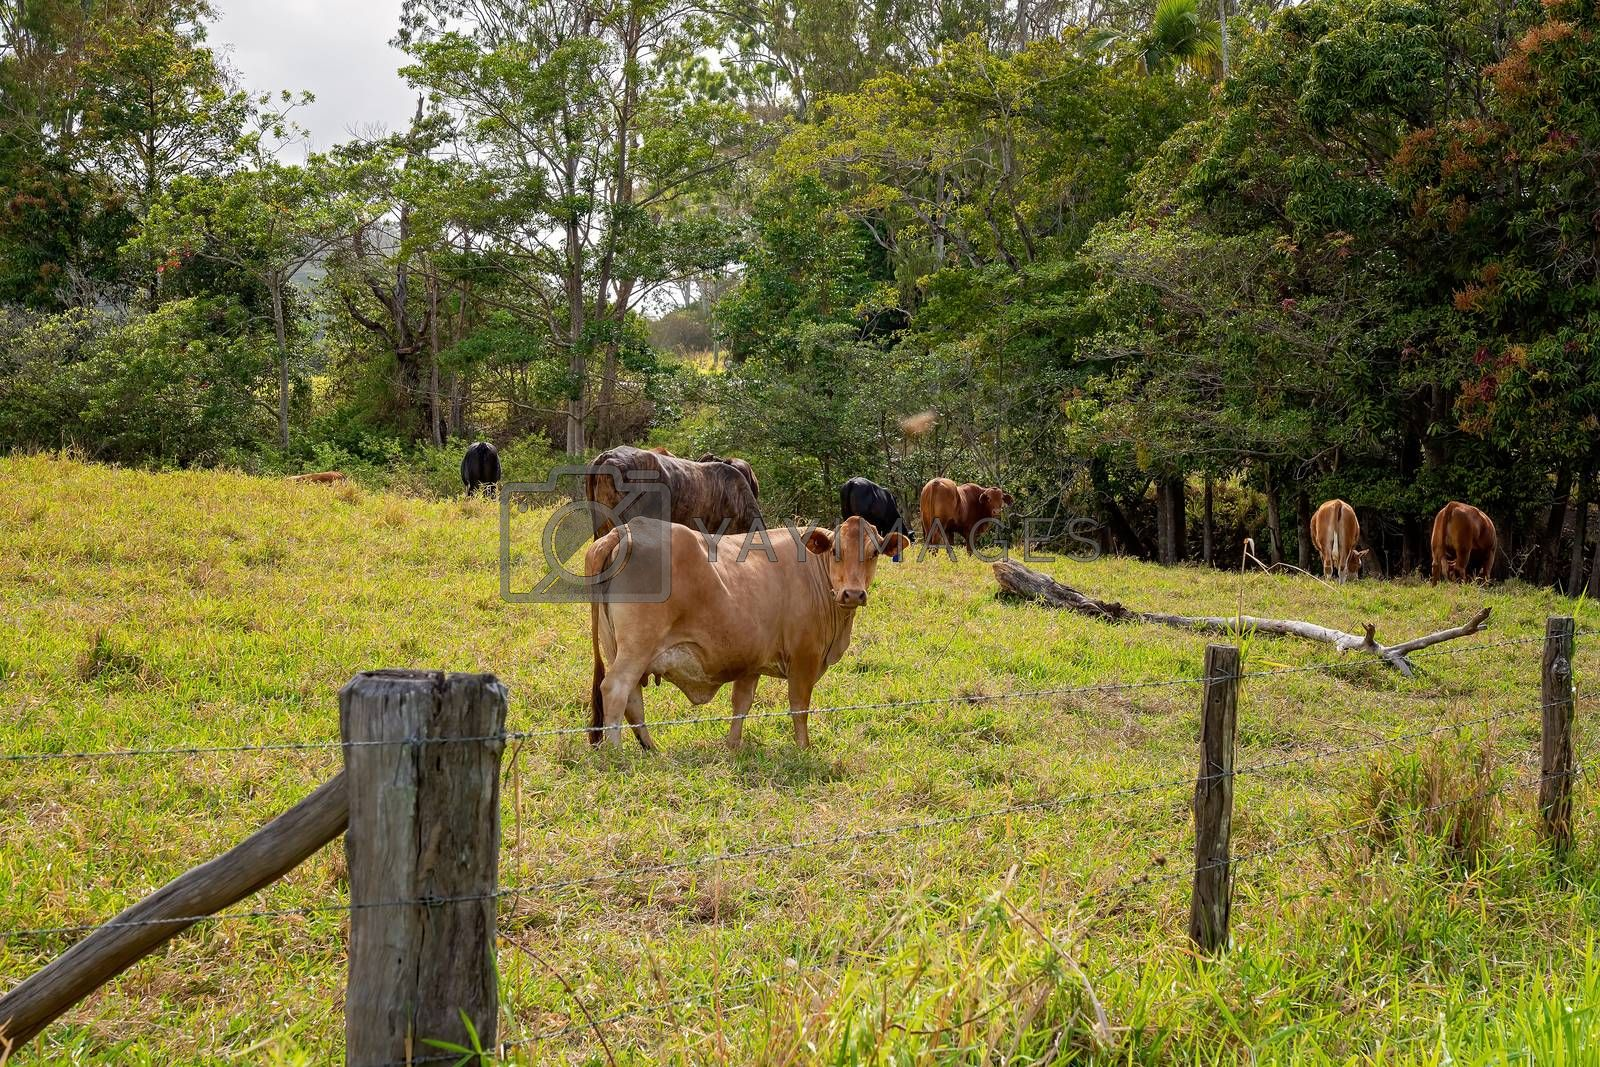 A cow looking around as she grazes with her herd